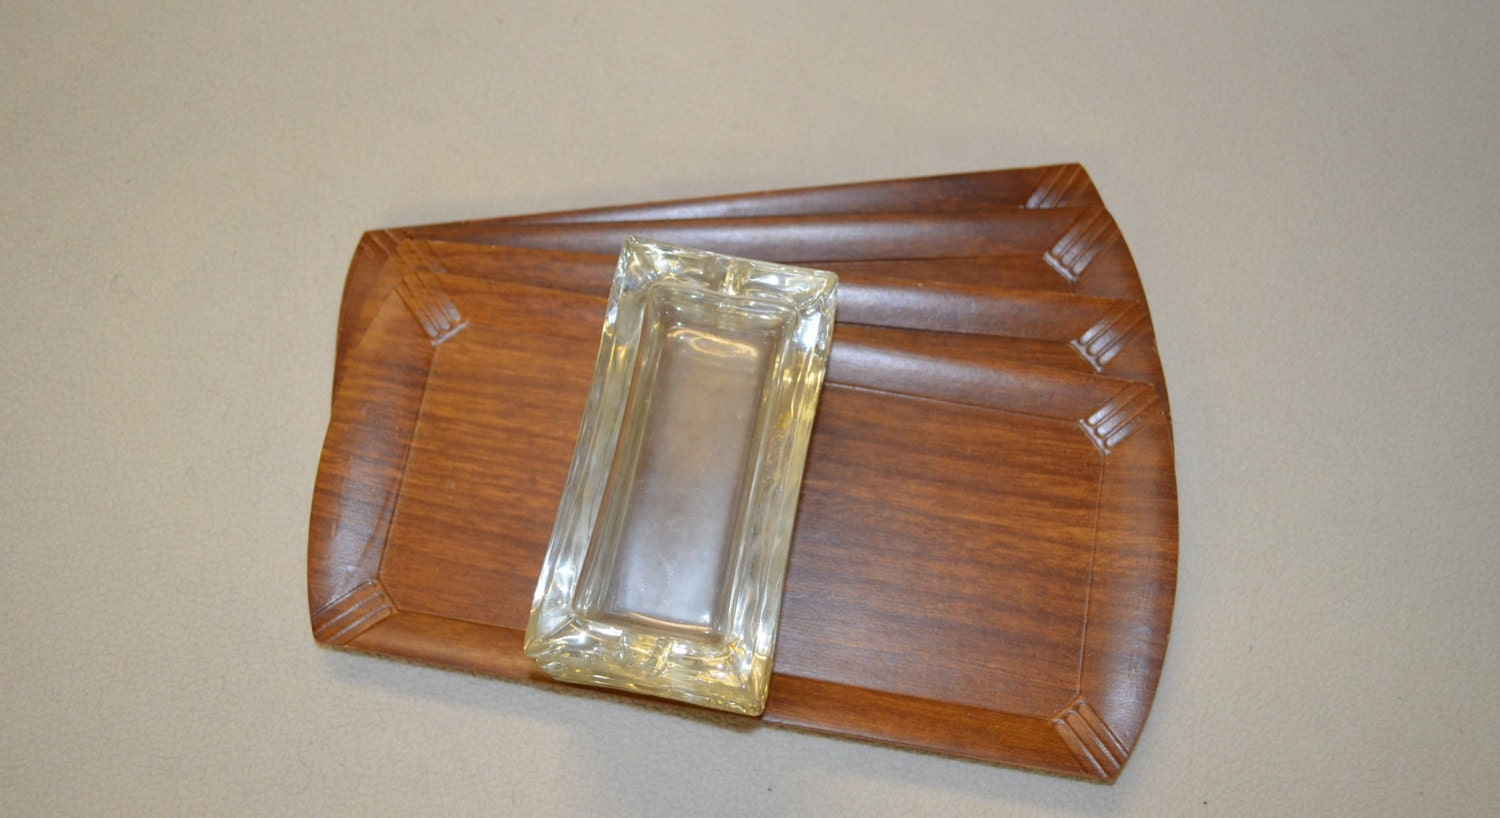 Hasko canape trays cocktail afternoon tea and bridge trays for Perspex canape trays